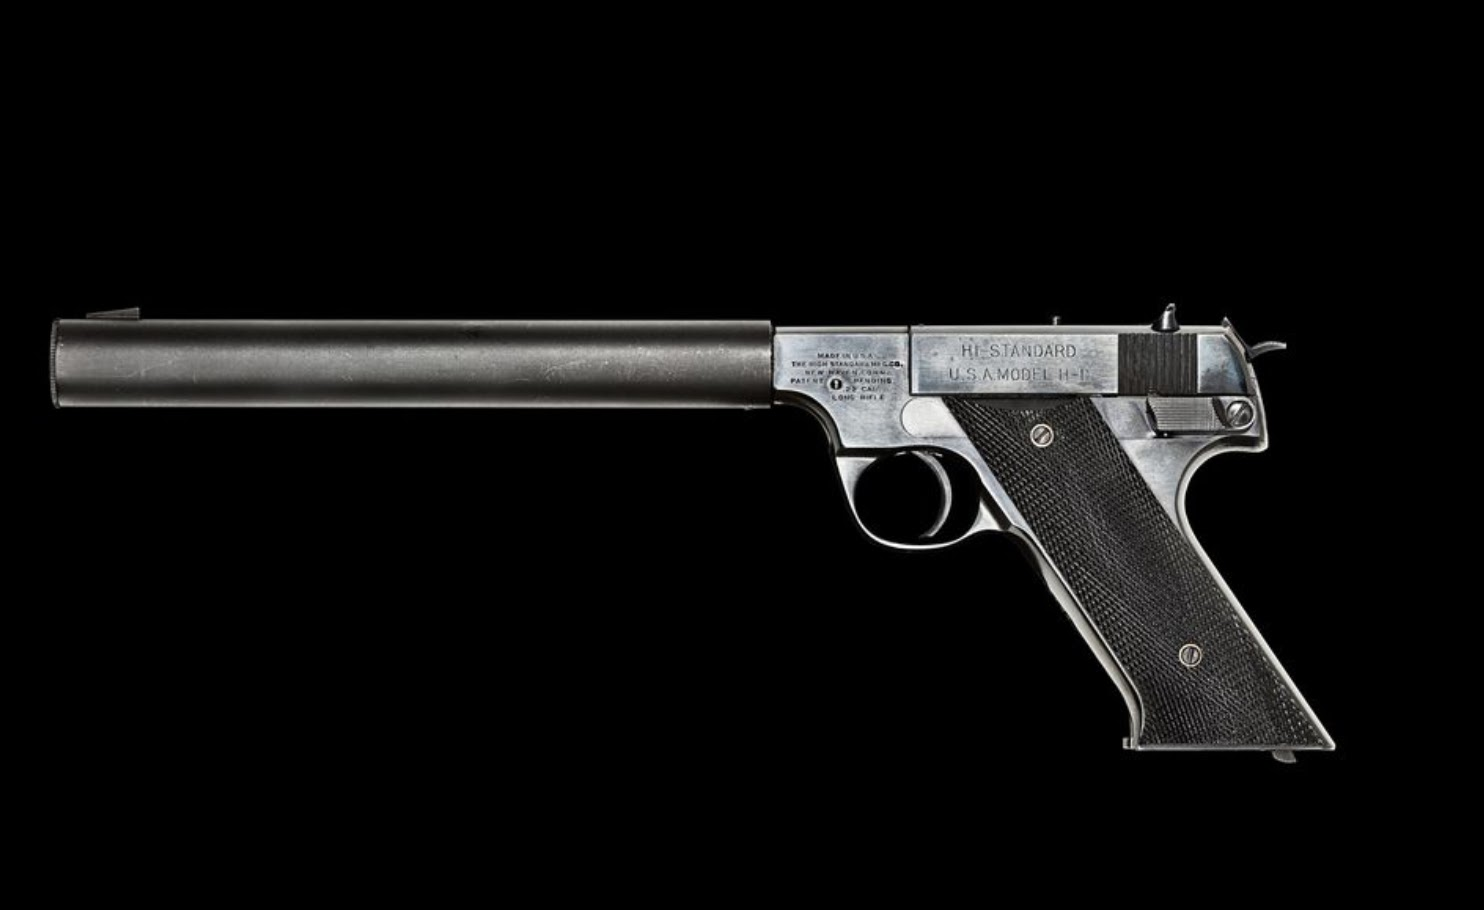 High Standard .22 was used during WWII and the Cold War by US spies